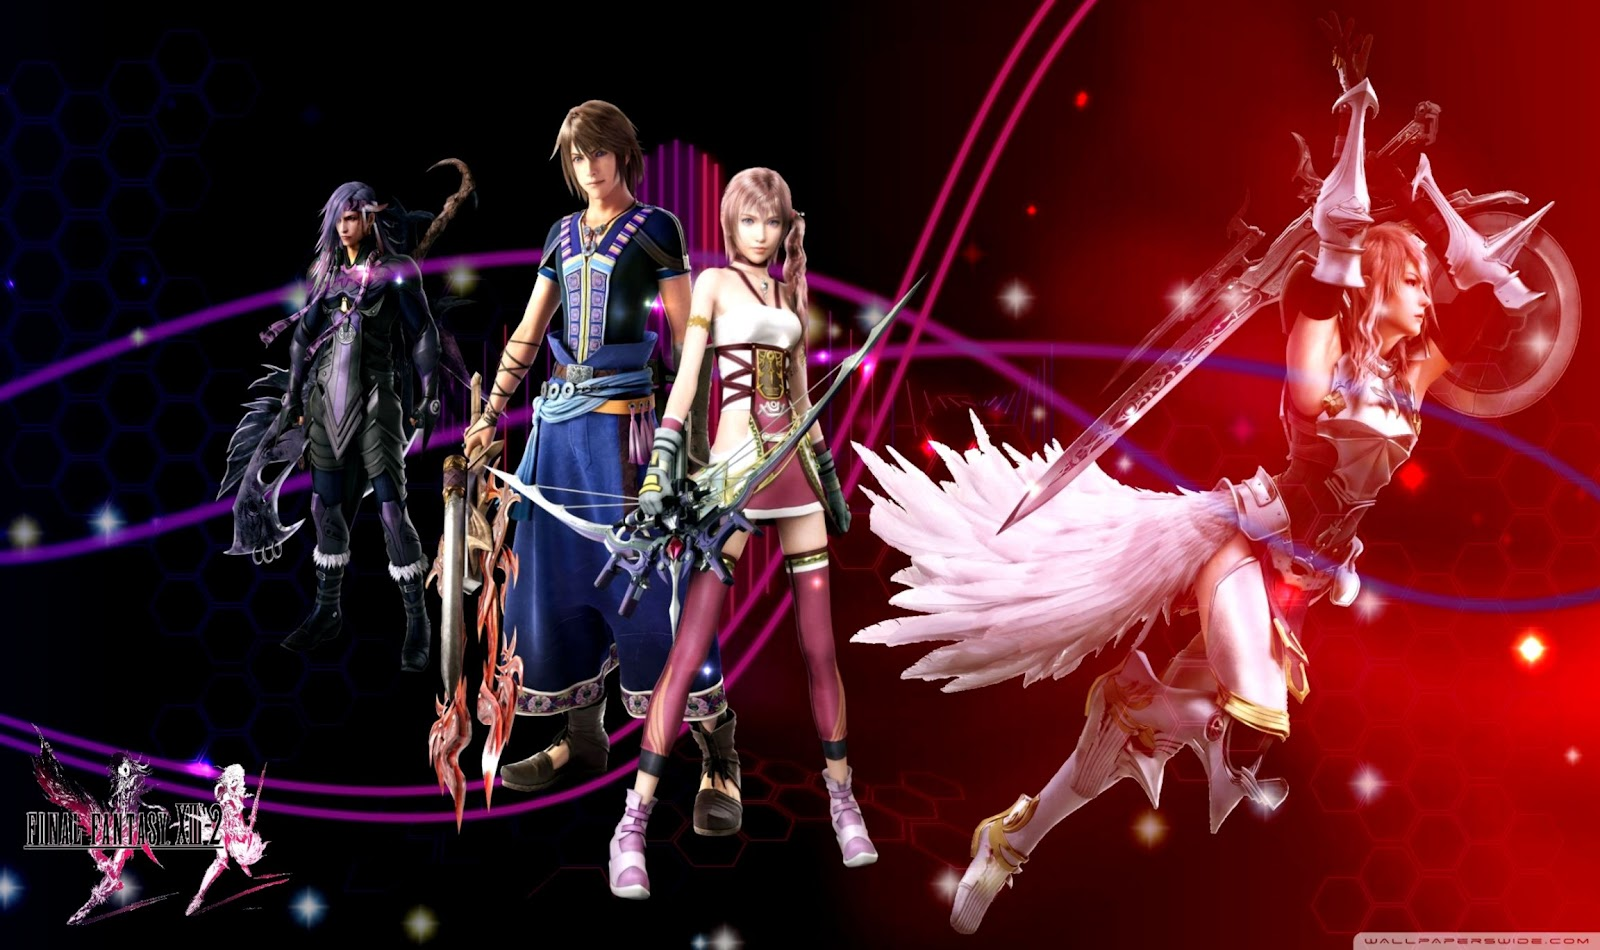 Final Fantasy Xiii 2 Wallpaper | Silver Wallpapers